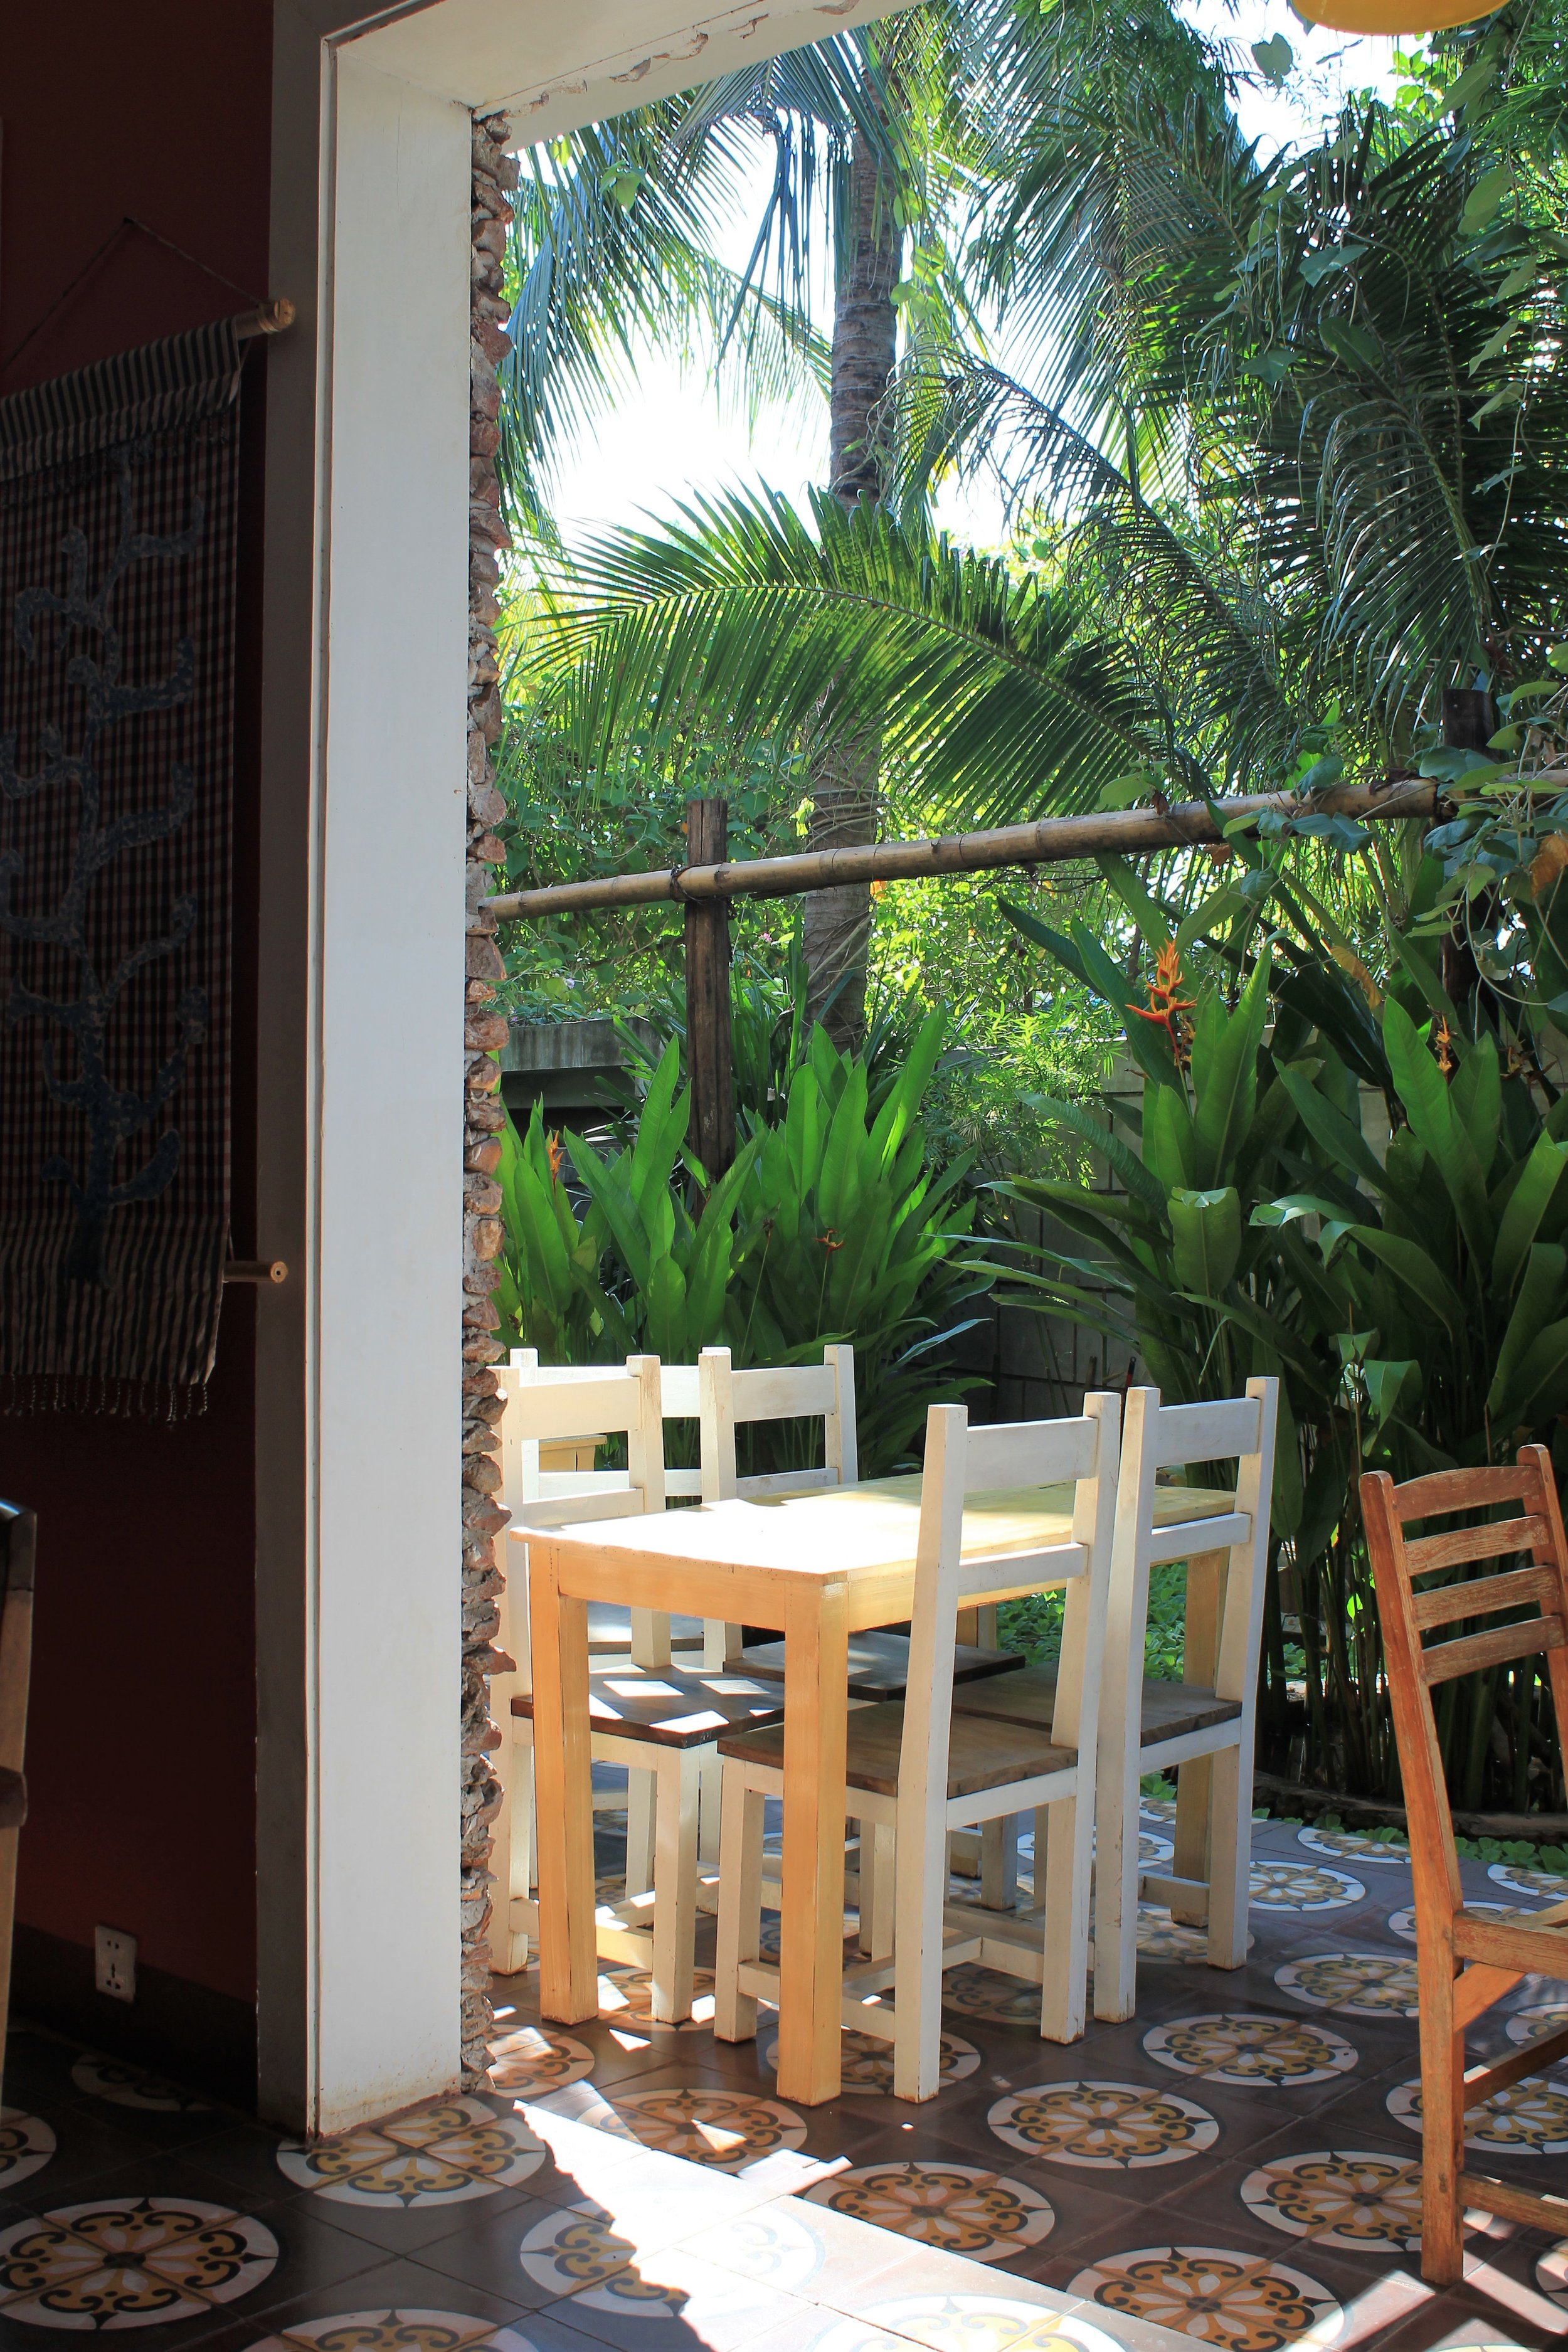 Luxury Accommodations in Siem Reap Cambodia